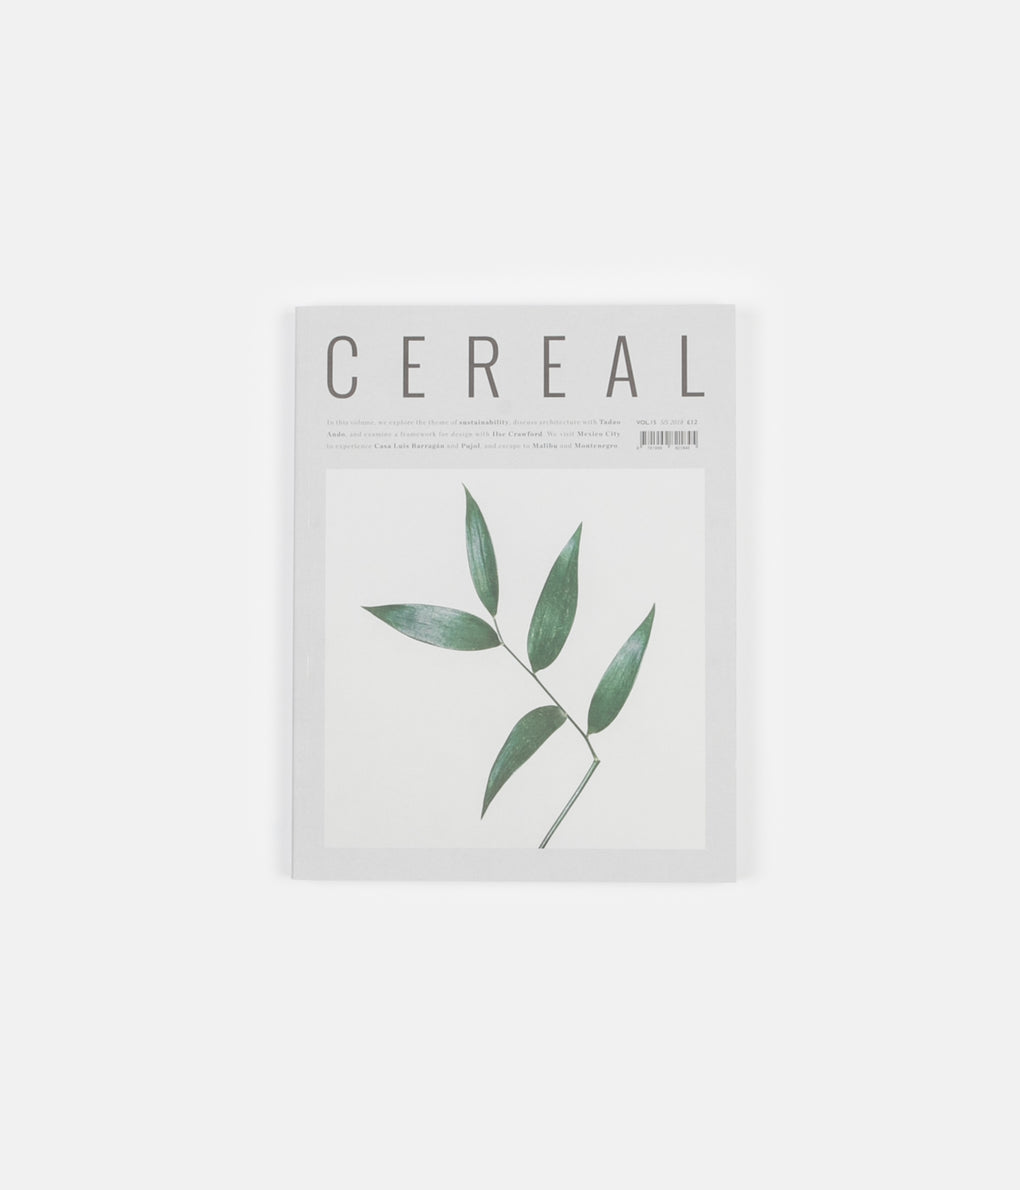 Cereal Magazine - Vol. 15